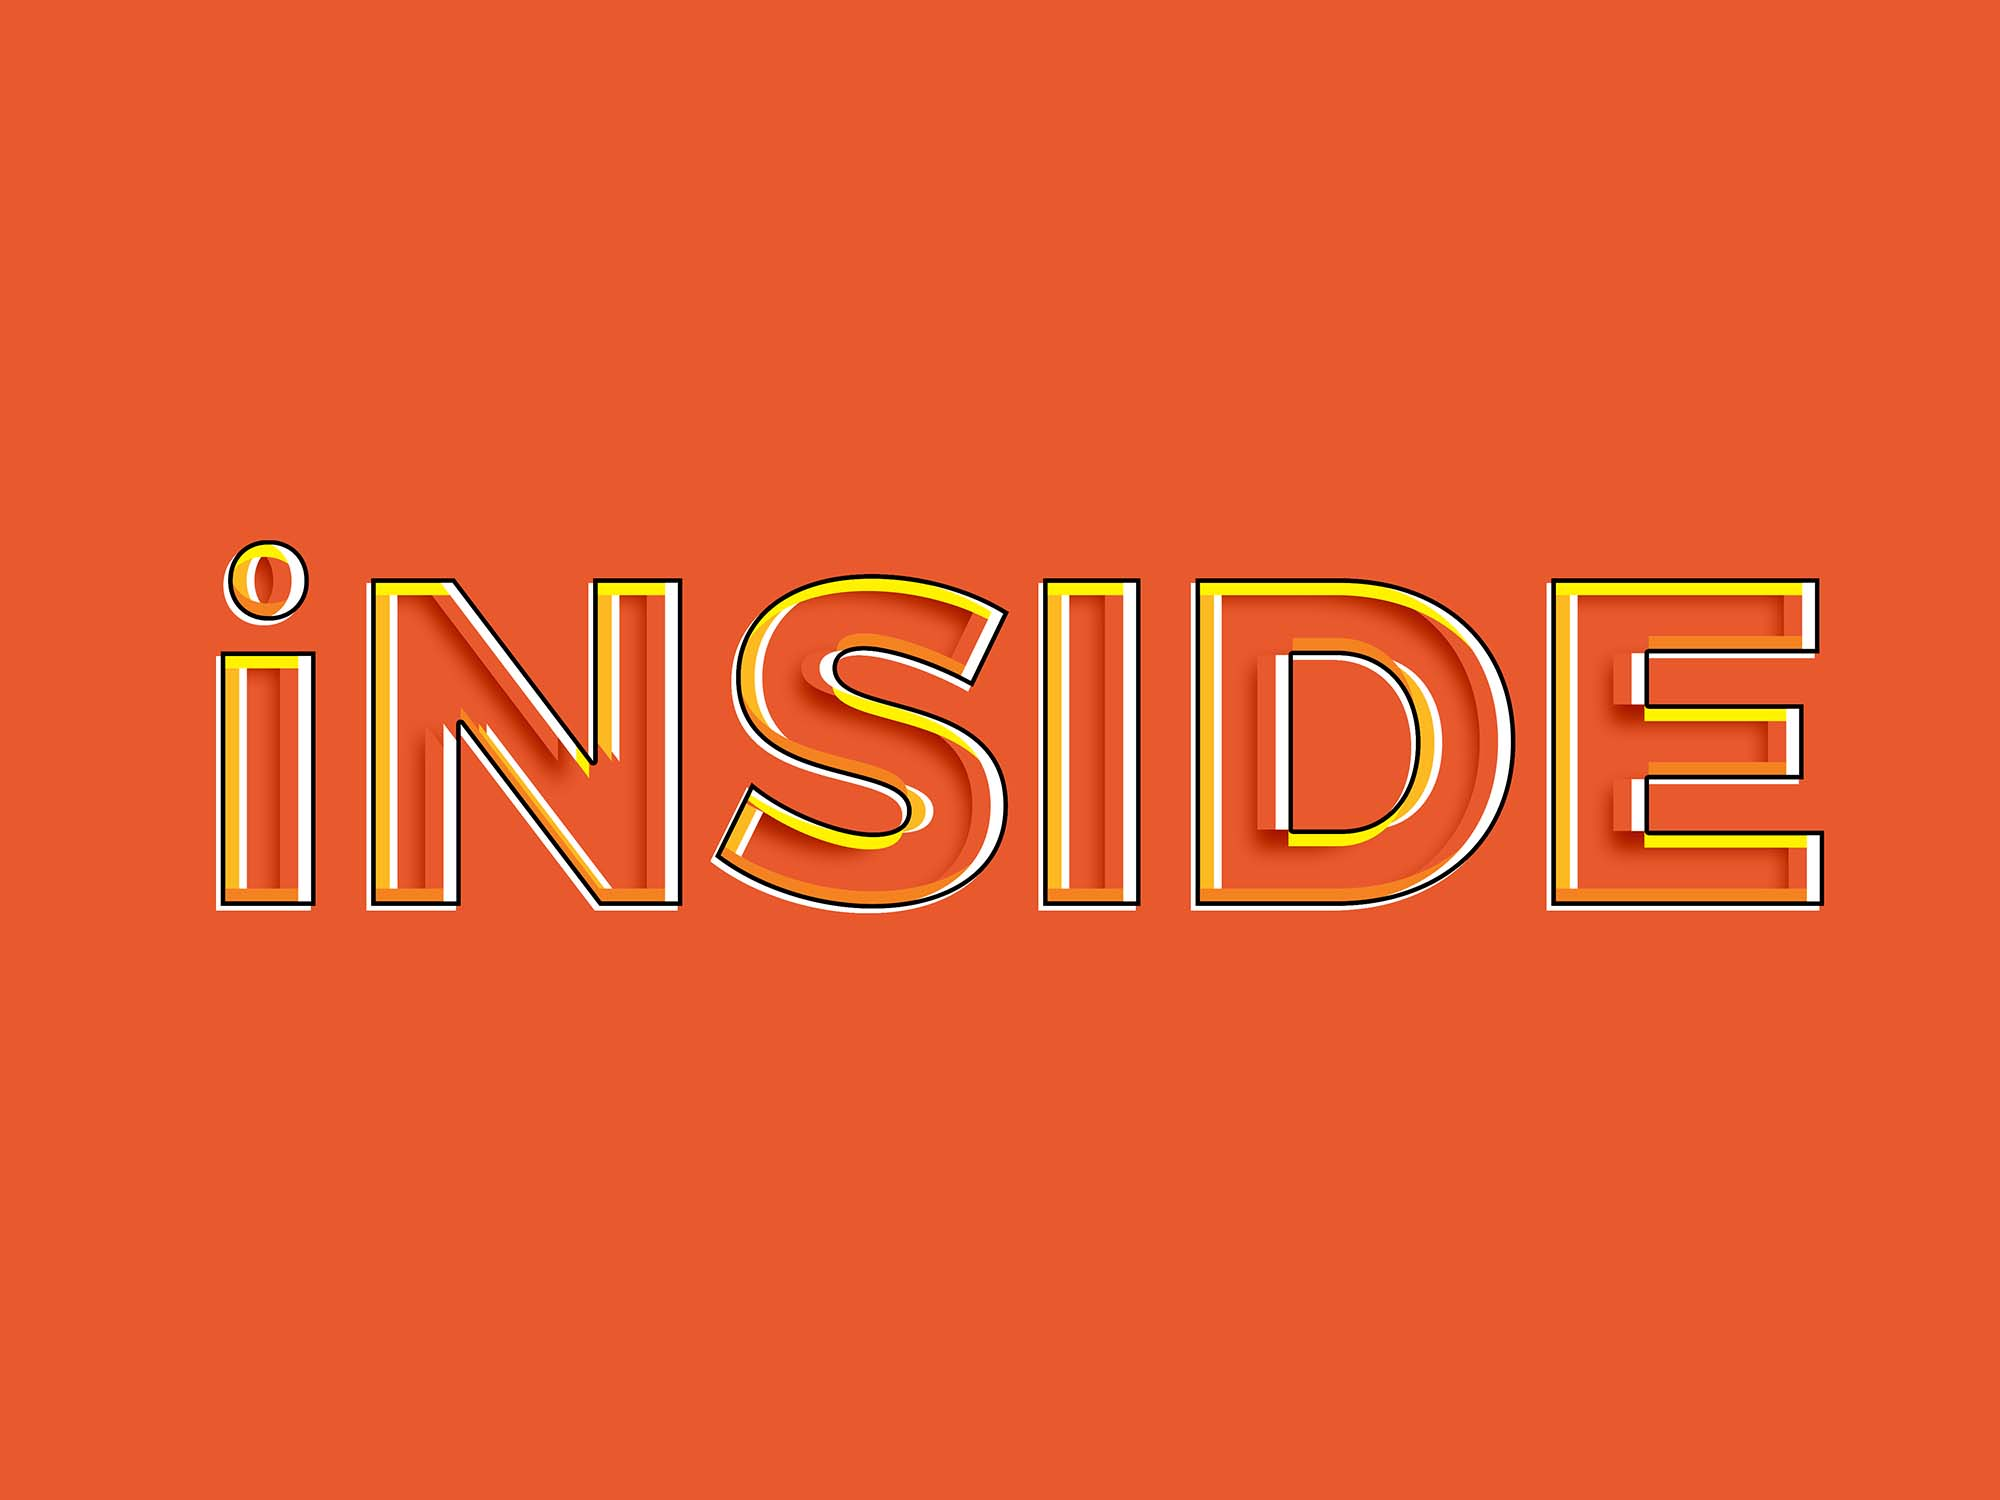 Inside Photoshop Text Effect 2